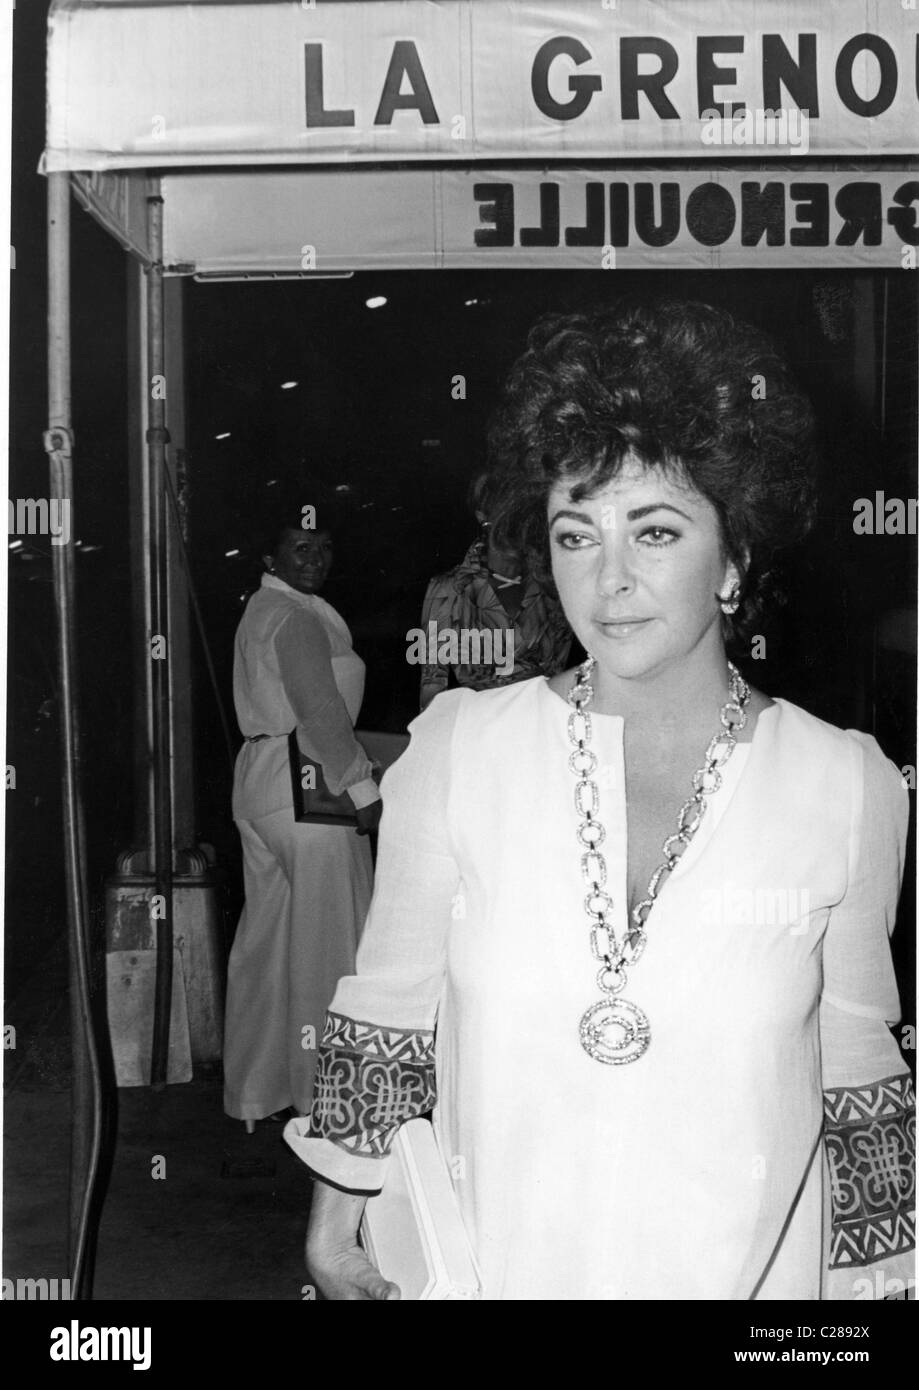 Actress Liz Taylor arrives at French restaurant - Stock Image